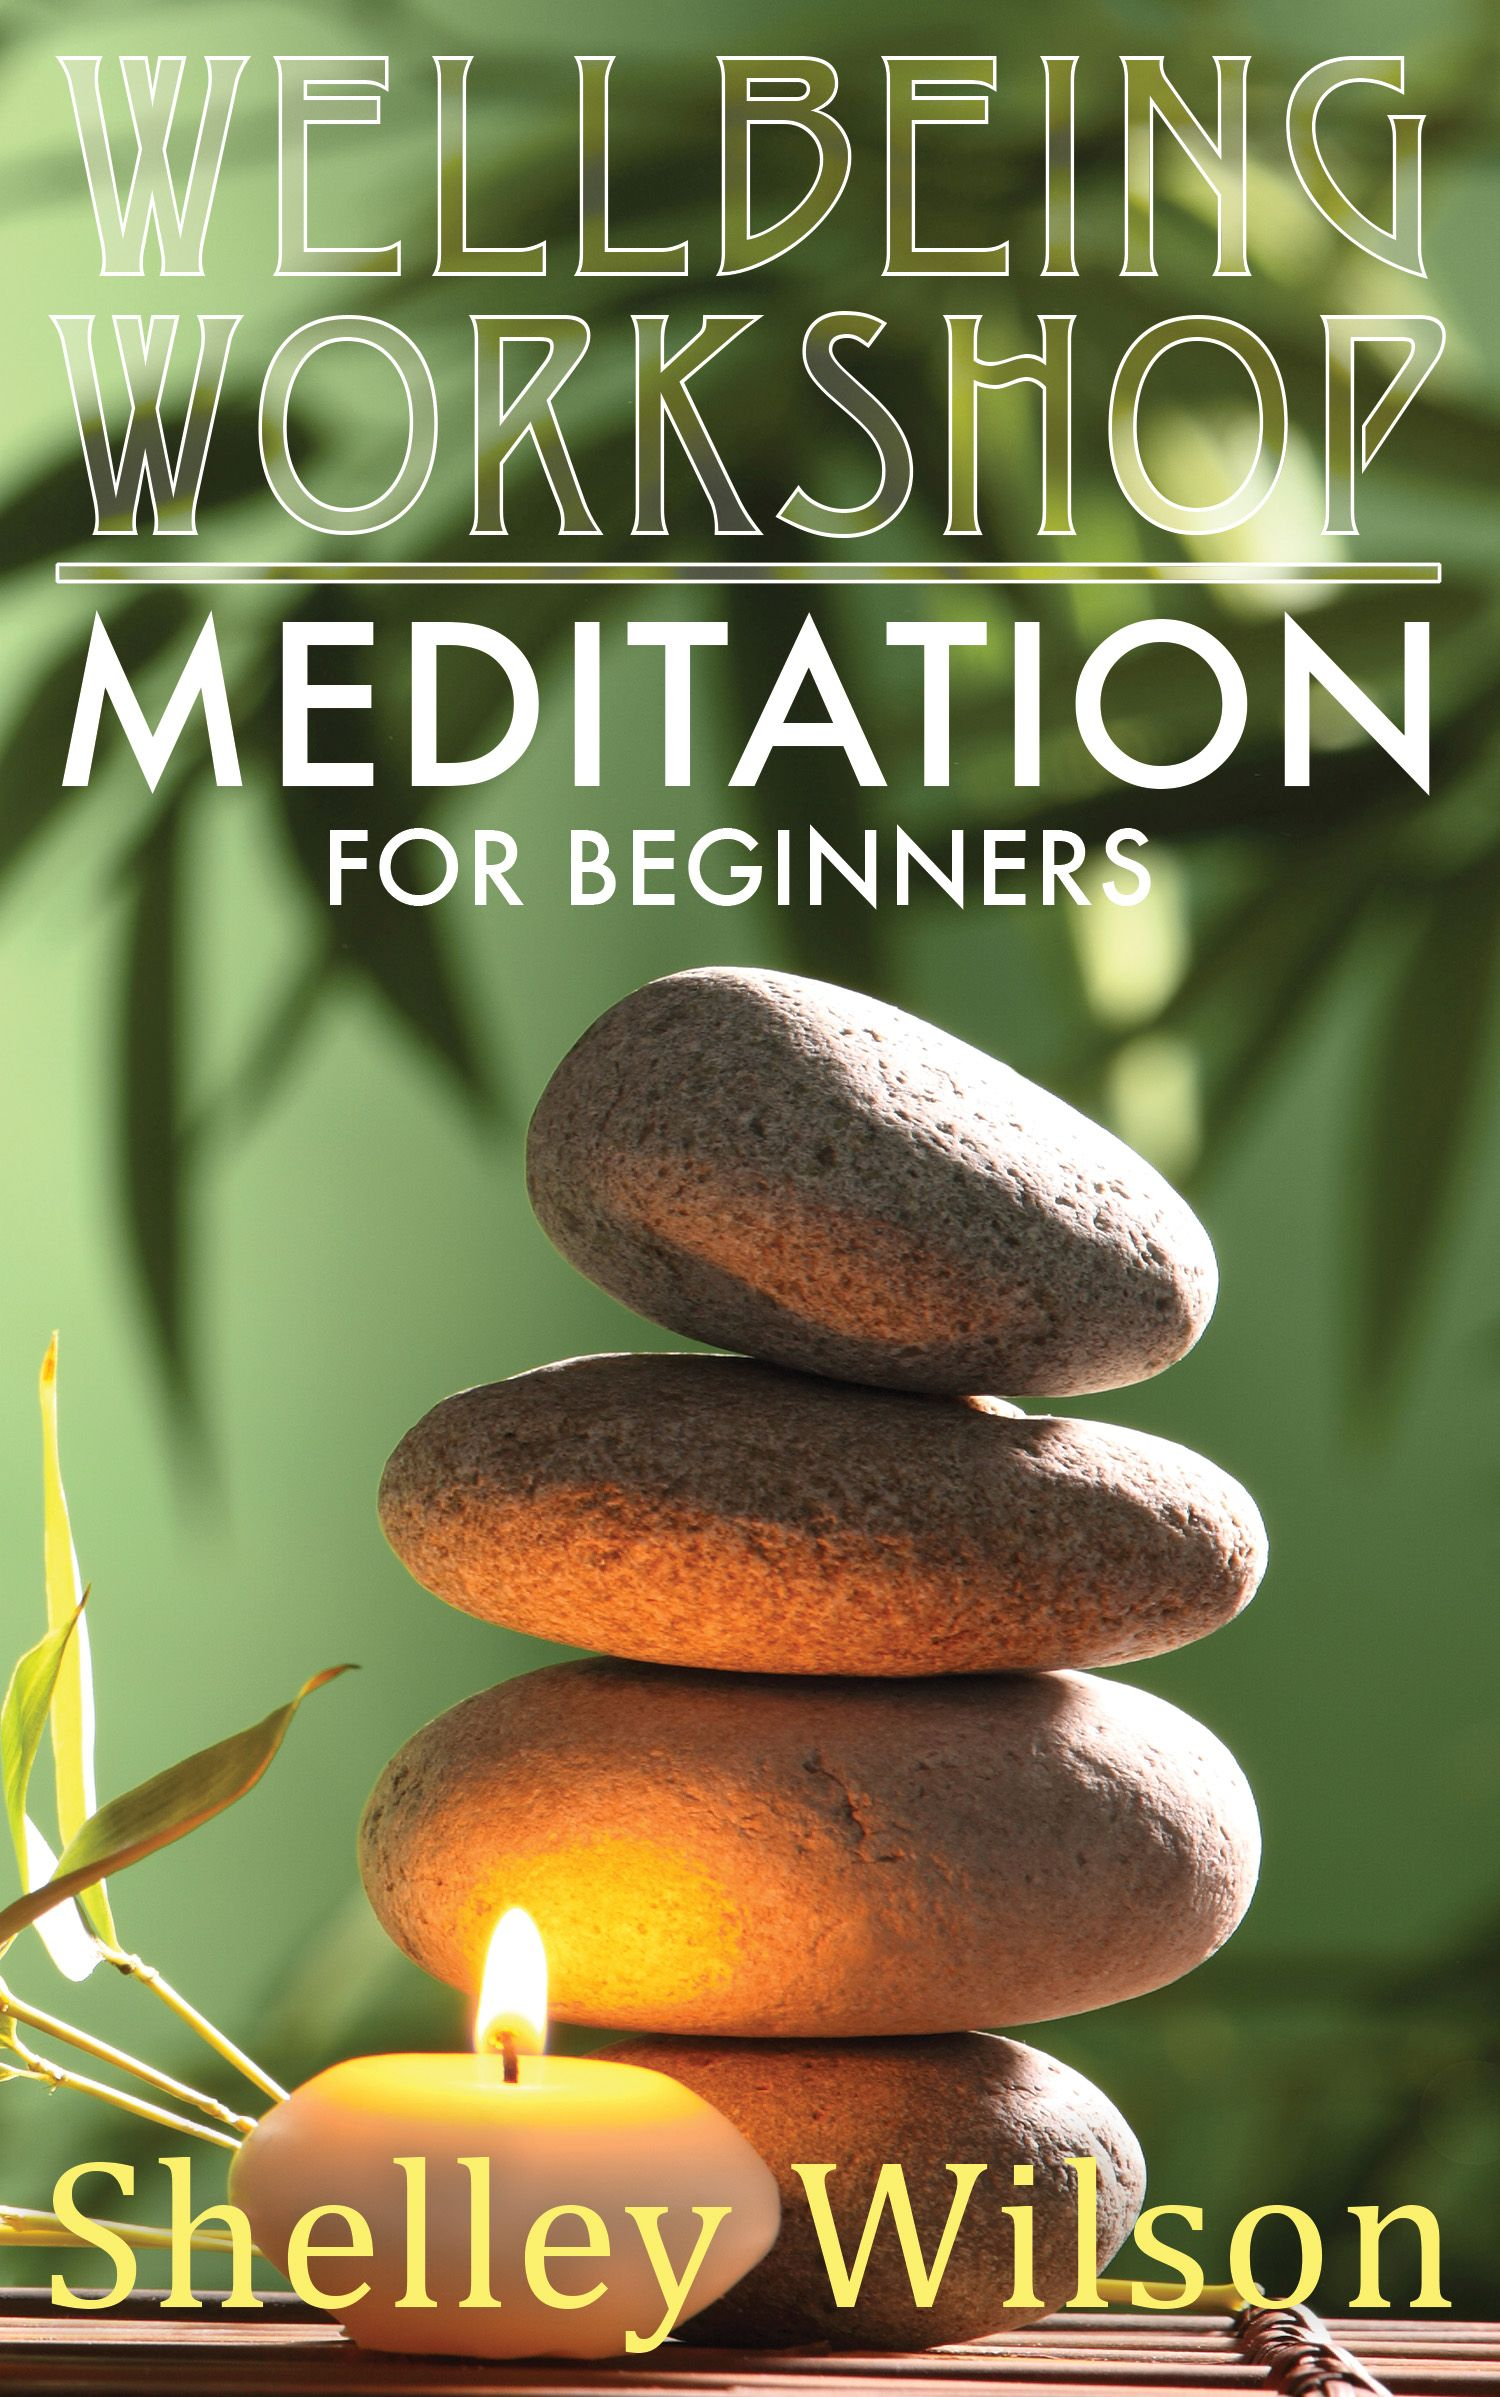 Meditation for Beginners: Wellbeing Workshop Series by Shelley Wilson